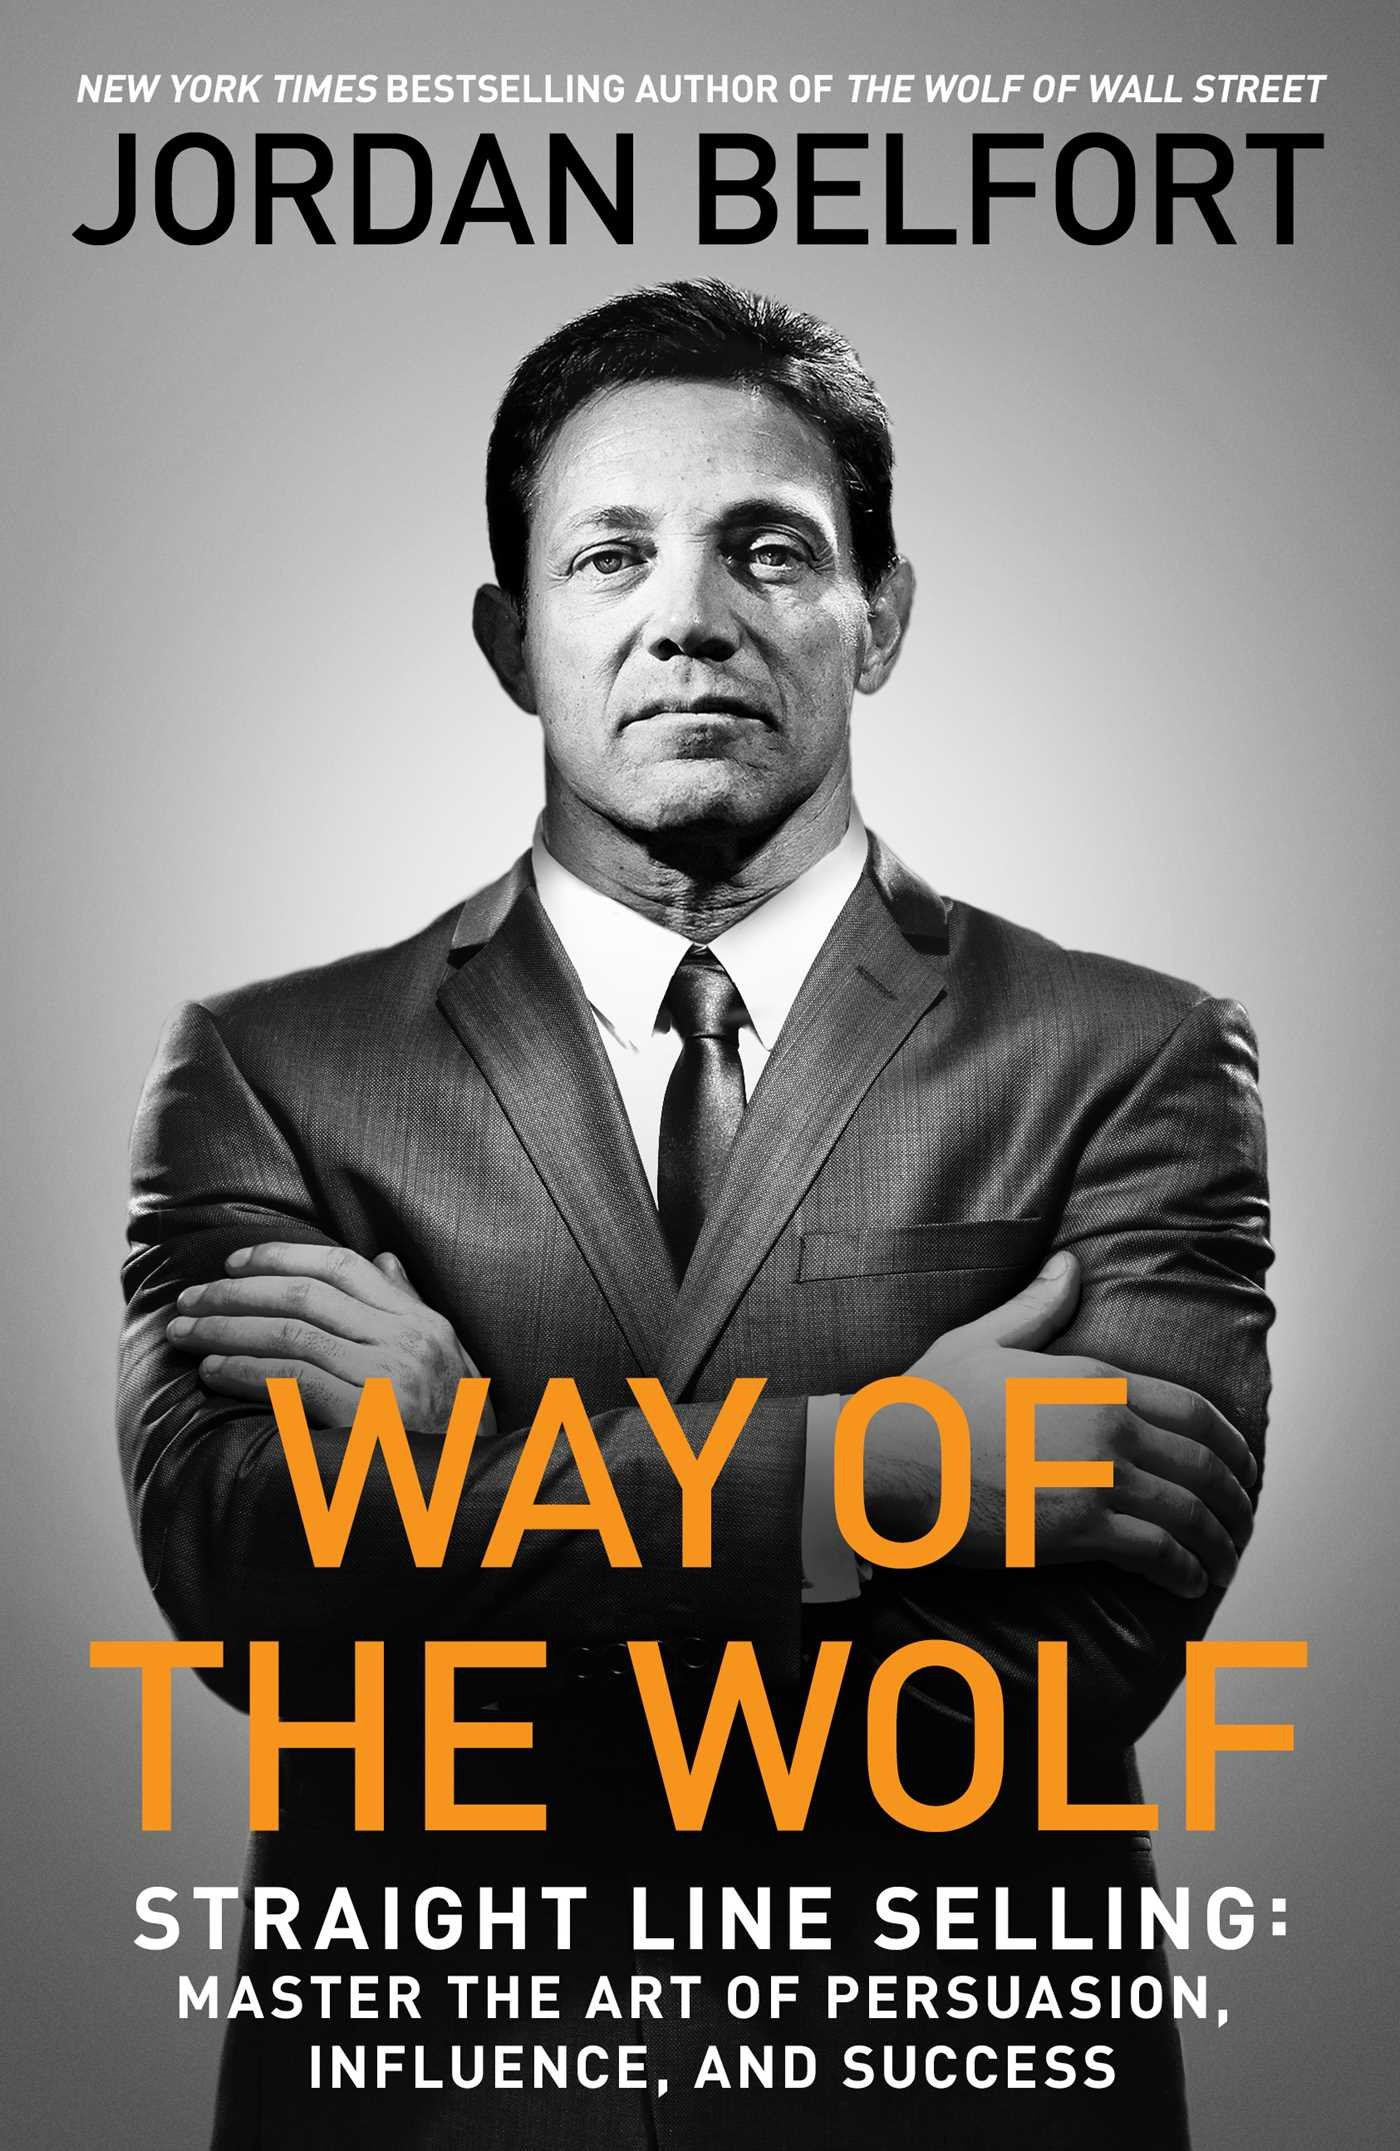 download film the wolf of wall street ita torrent